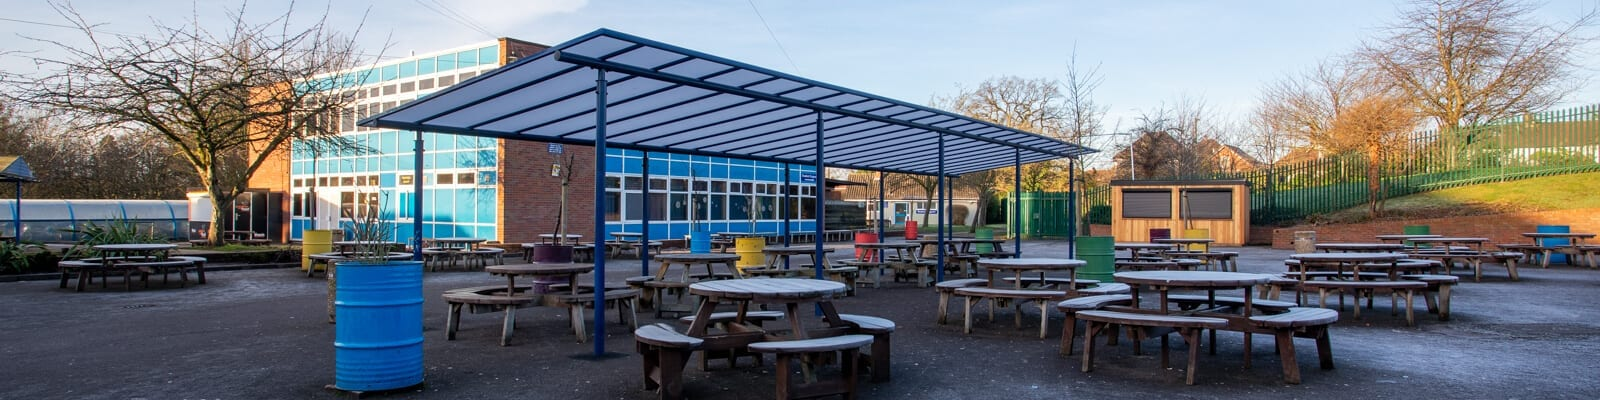 Dining Shelter we designed for Meole Brace School